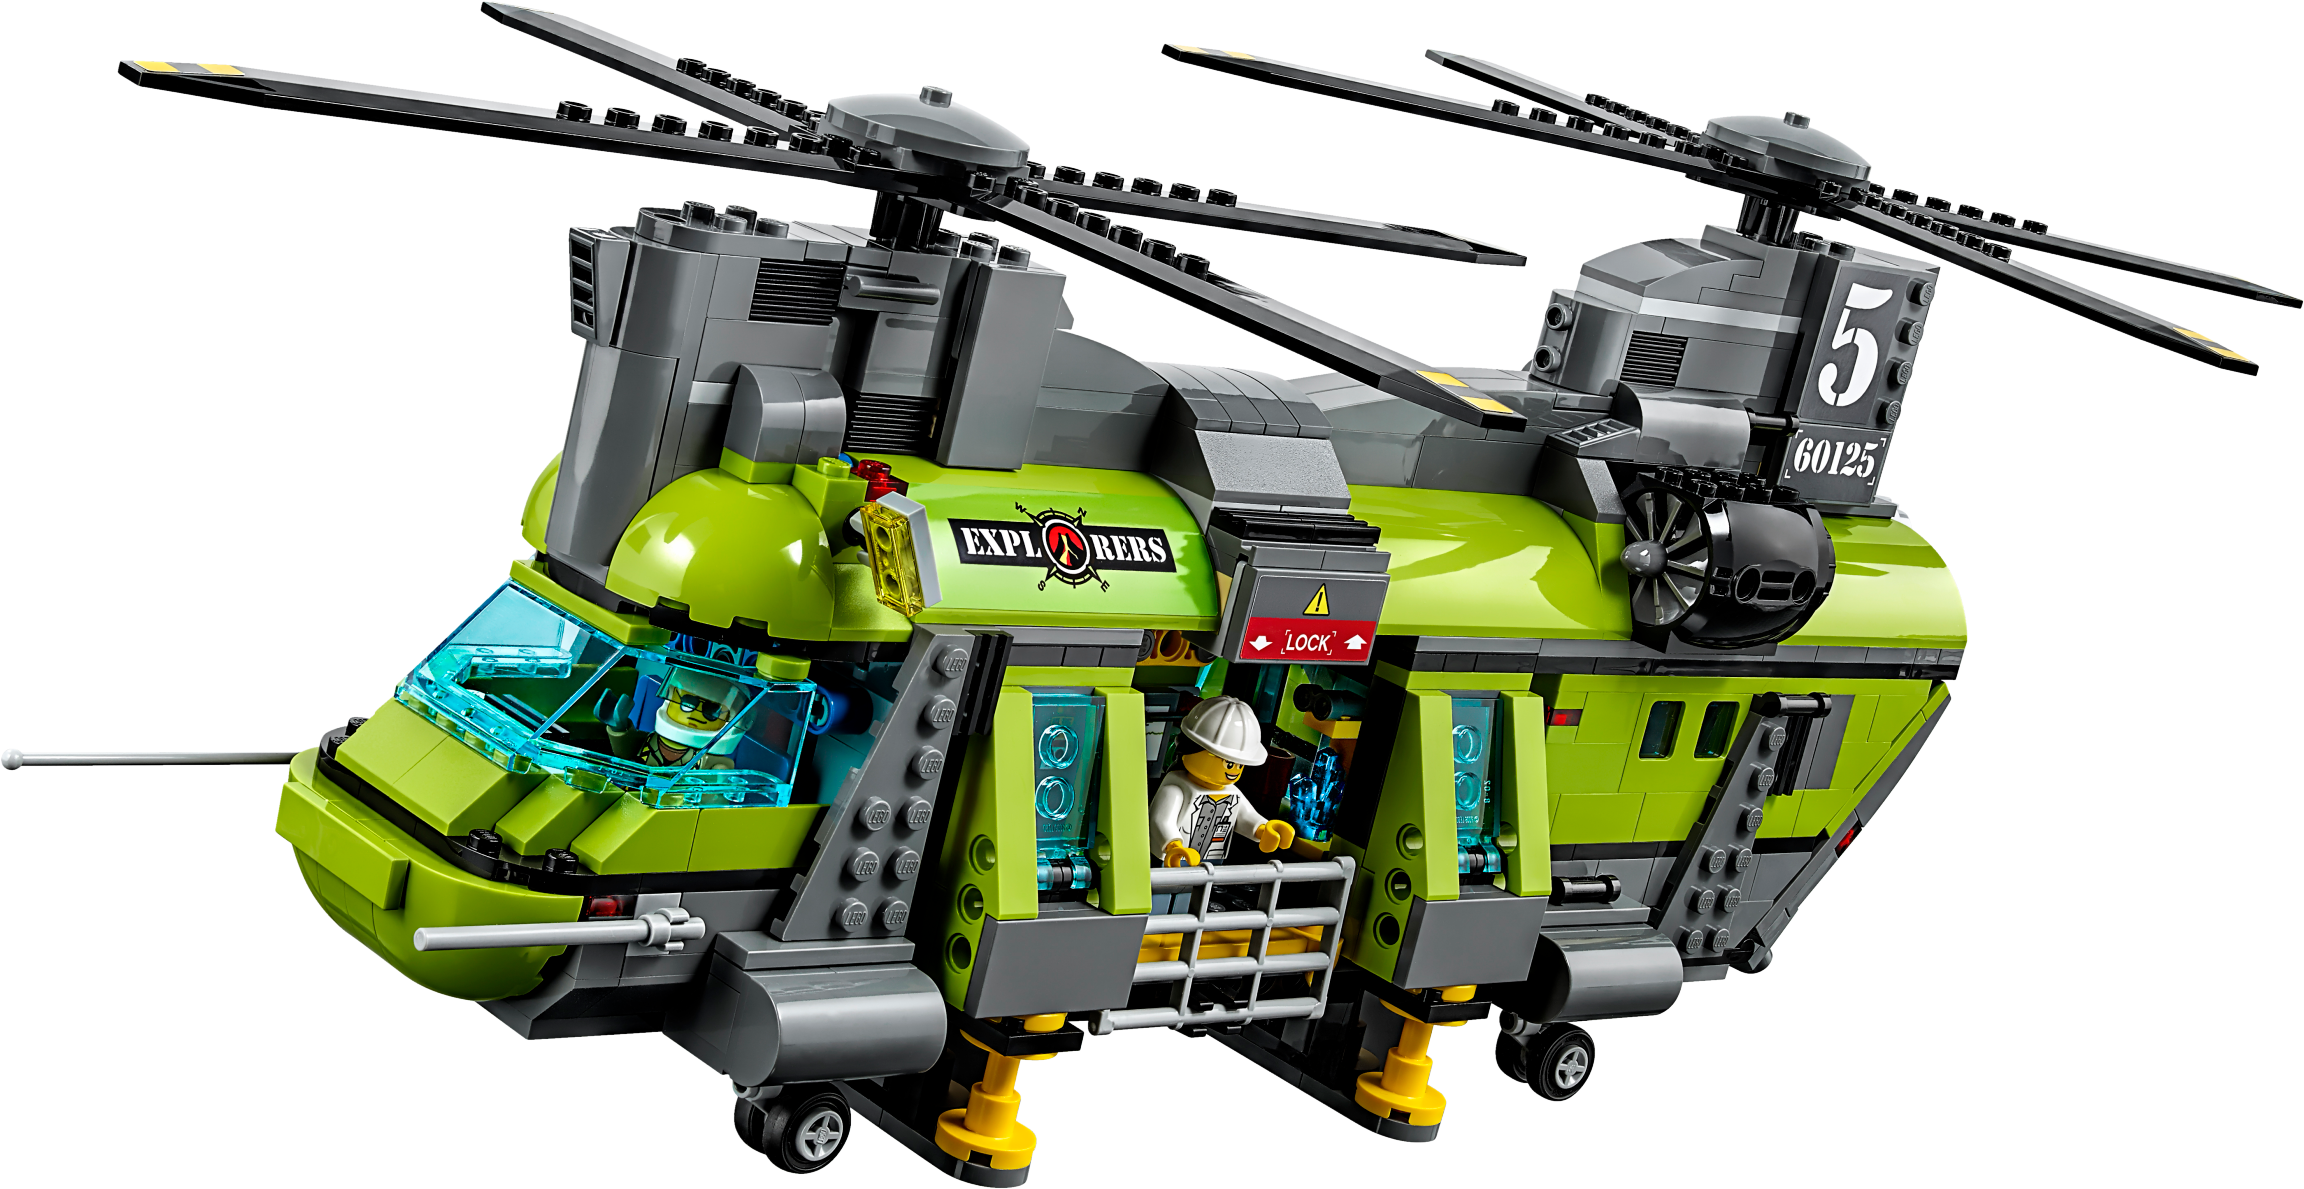 Volcano Heavy-lift Helicopter